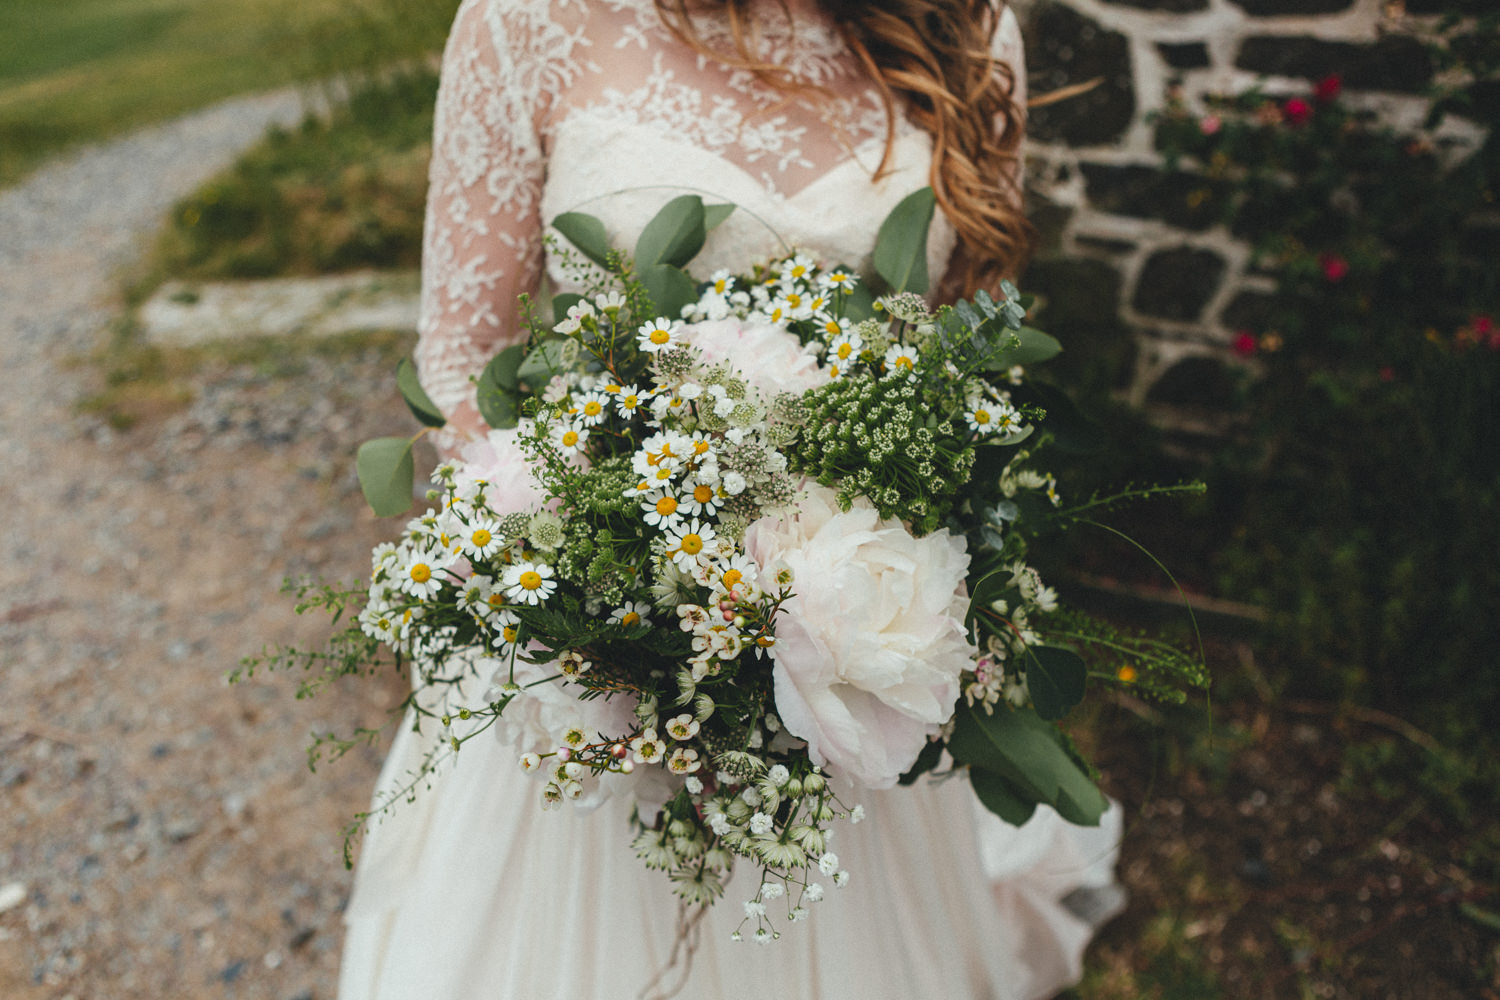 Bridal bouquet. Bouquet with daisies. Bouquet with wildflowers. St Enodoc Church. St Enodoc Church in Cornwall. Cornwall wedding. Wedding in Cornwall